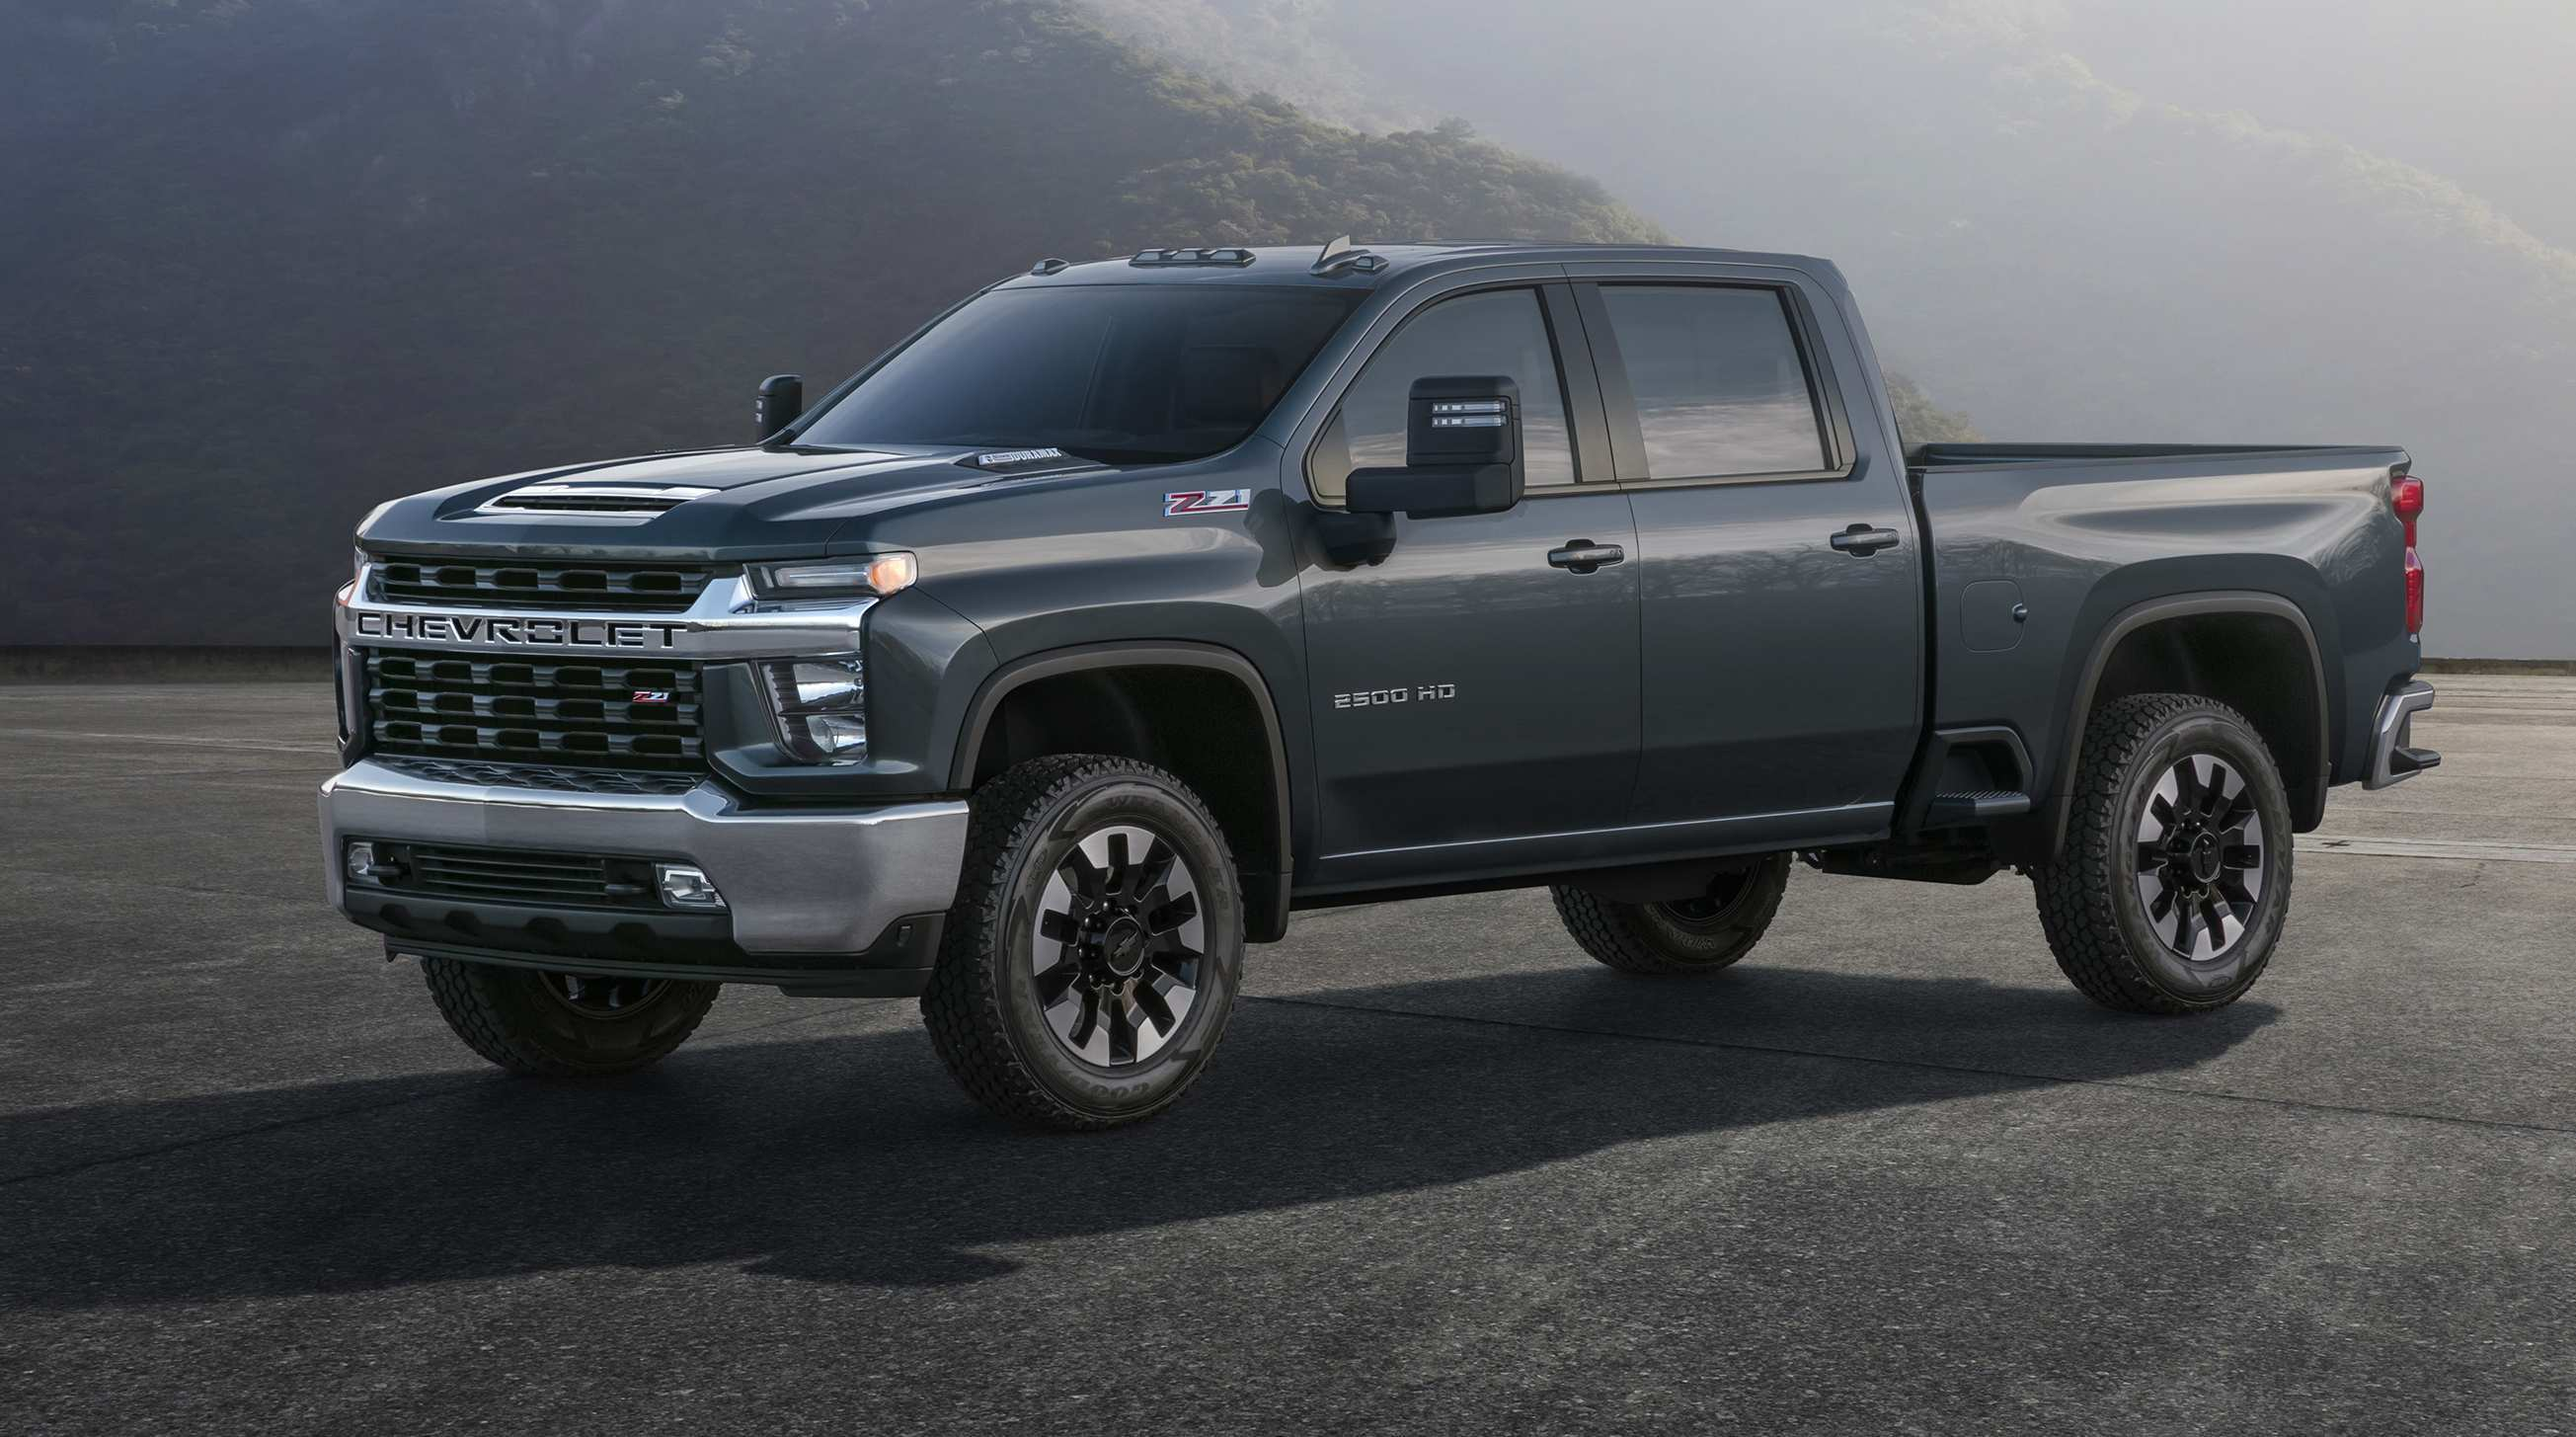 65 All New 2020 Chevy Suburban Overview